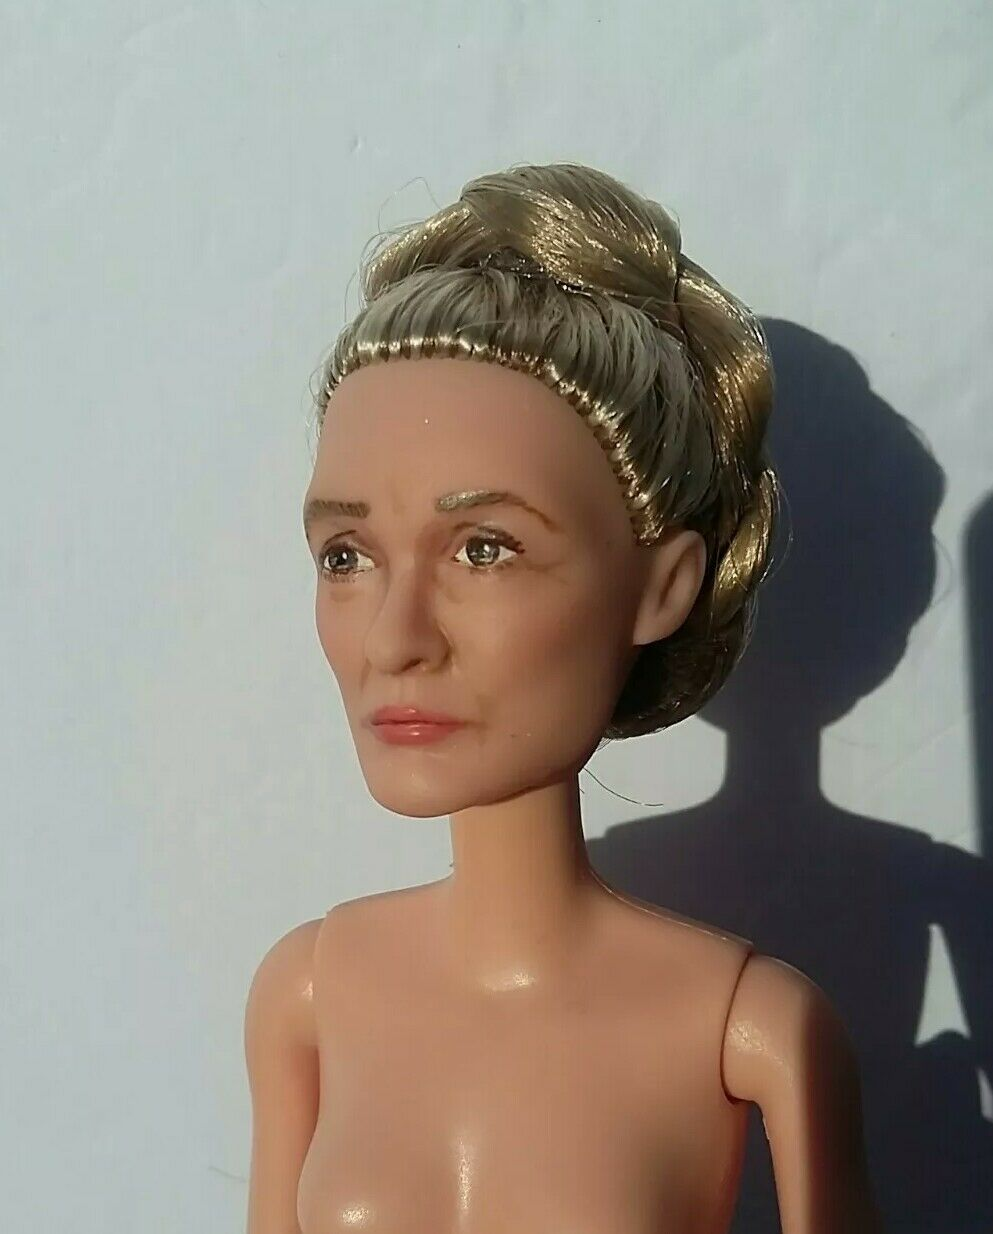 OOAK general Leia Star Wars Force despierta repintado Carrie Fisher Muñeca Barbie